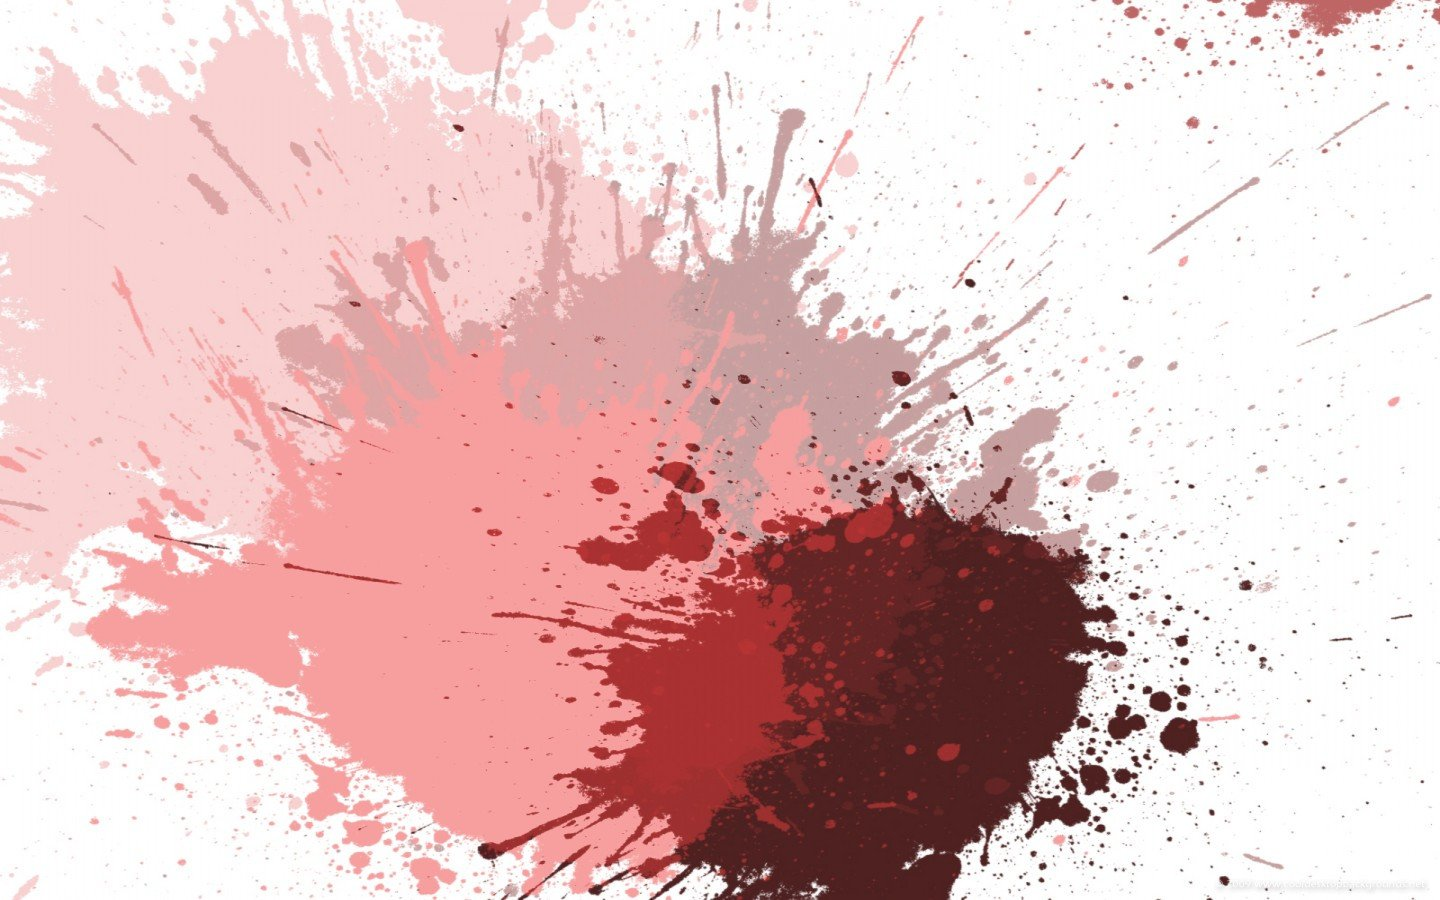 Blood Splatter Powerpoint Templates Background Blood Sf Wallpaper